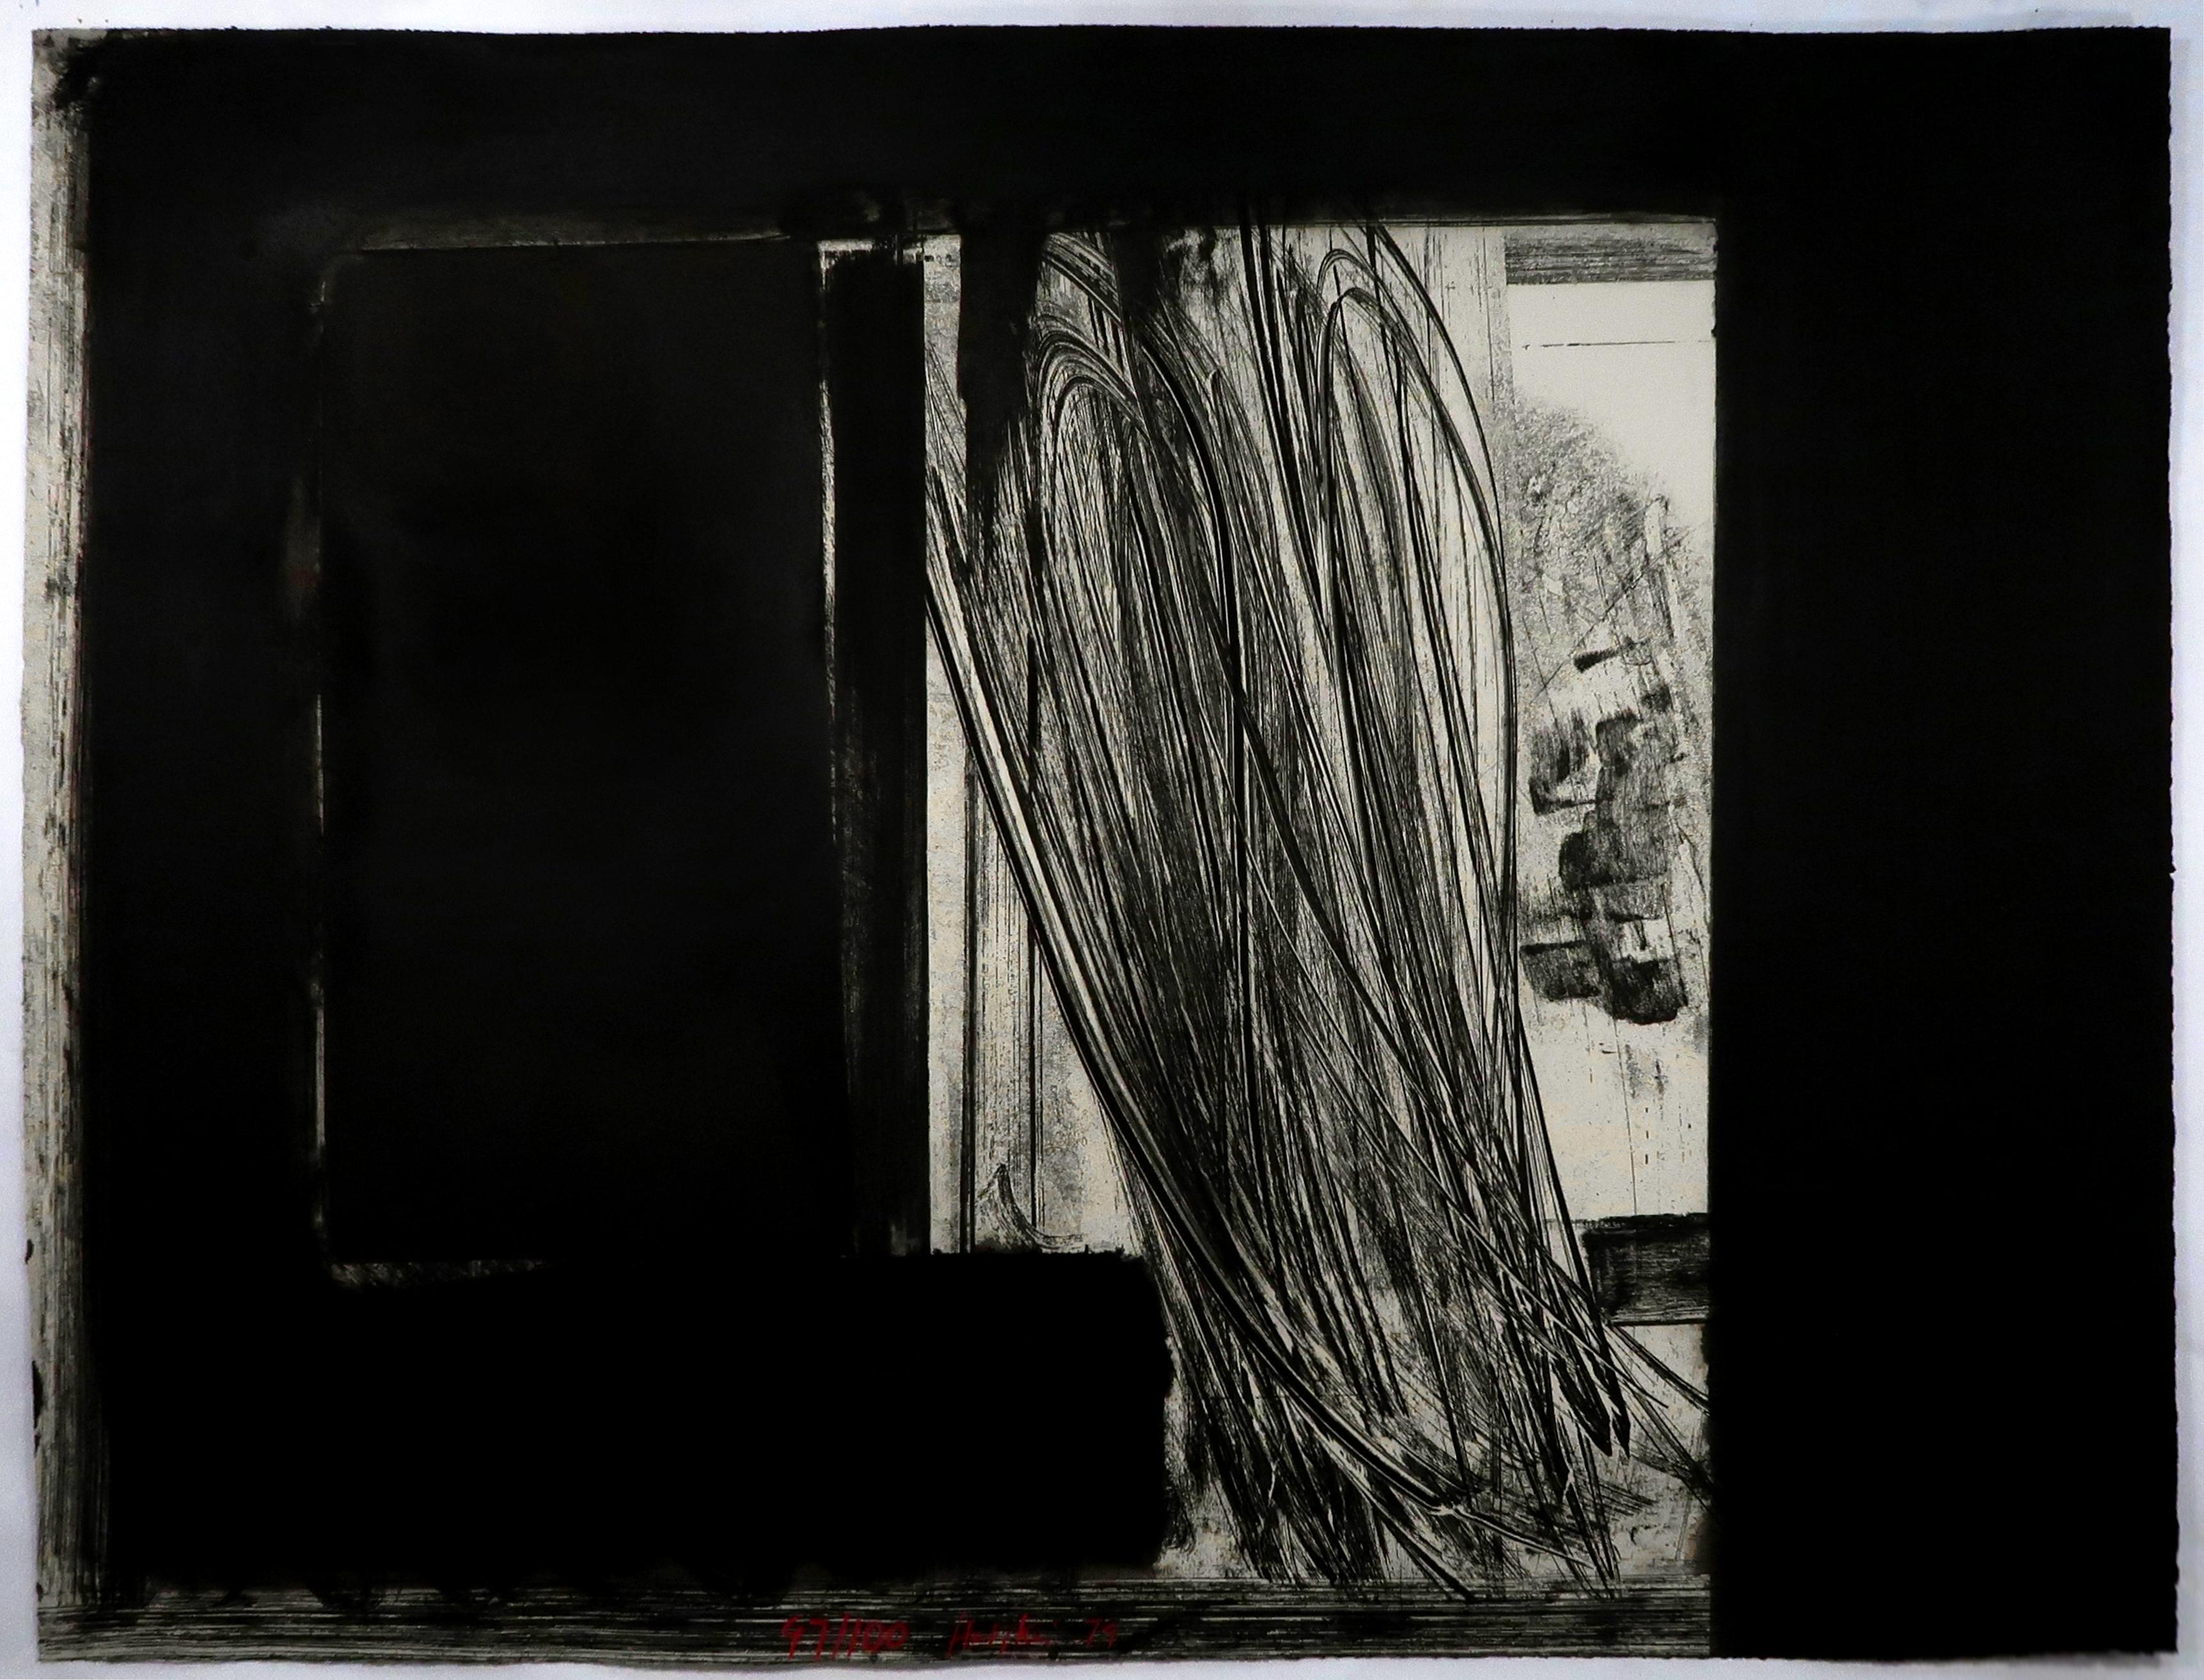 Howard Hodgkin Early Evening in the Museum of Modern Art: abstract black white